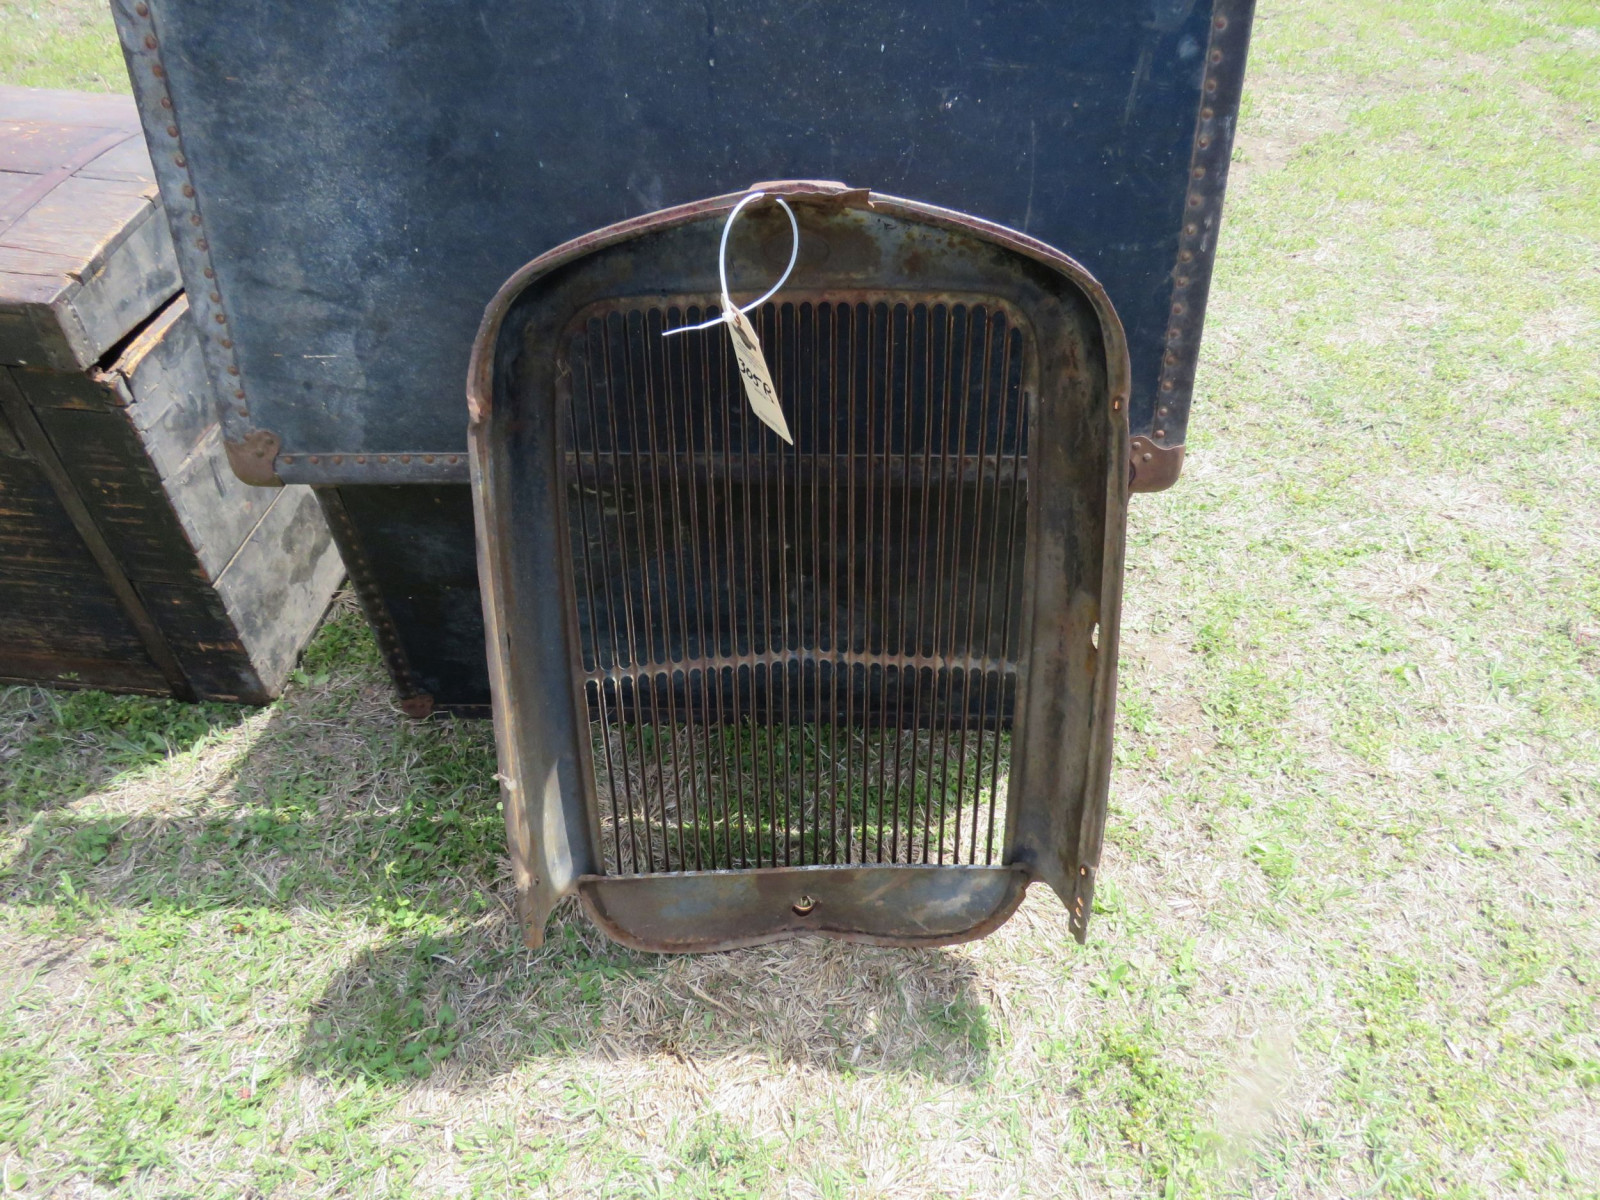 1932 FORD ORIGINAL GRILL - Image 2